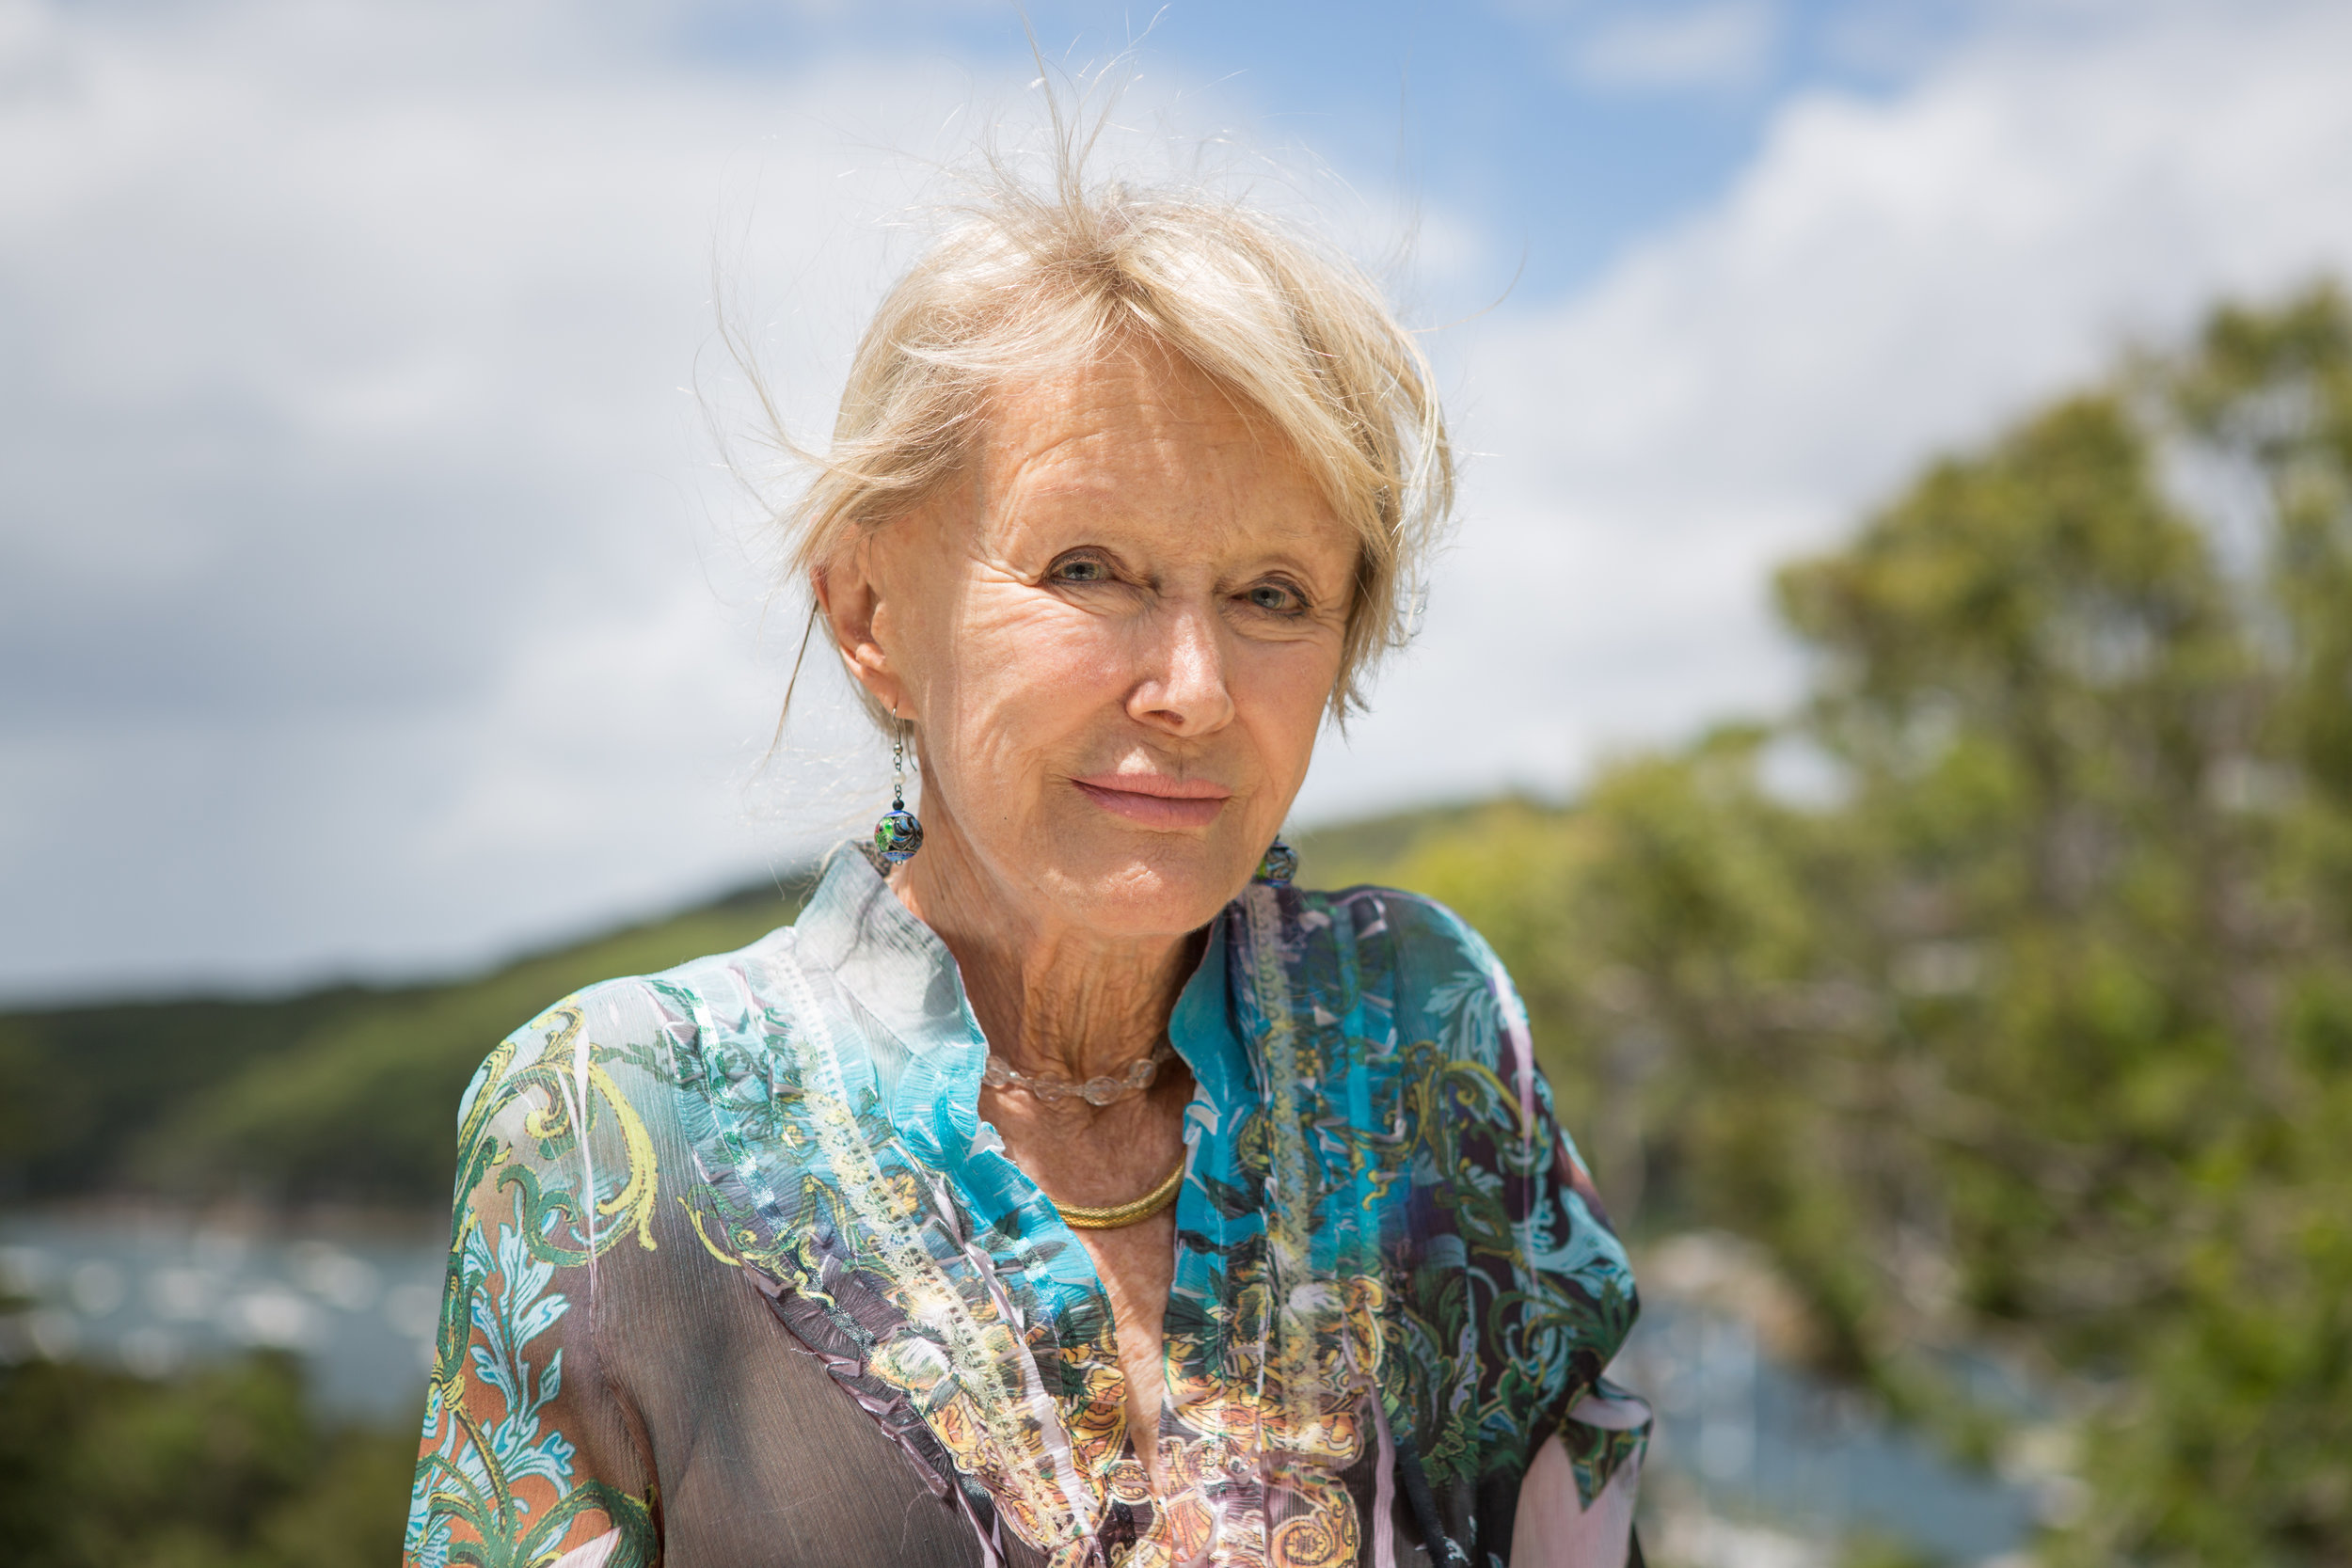 We interviewed Australia's Ocean Icon/Explorer Valerie Taylor back in 2015 for 'The Last Sea Treasure,' about protecting the Coral Sea.